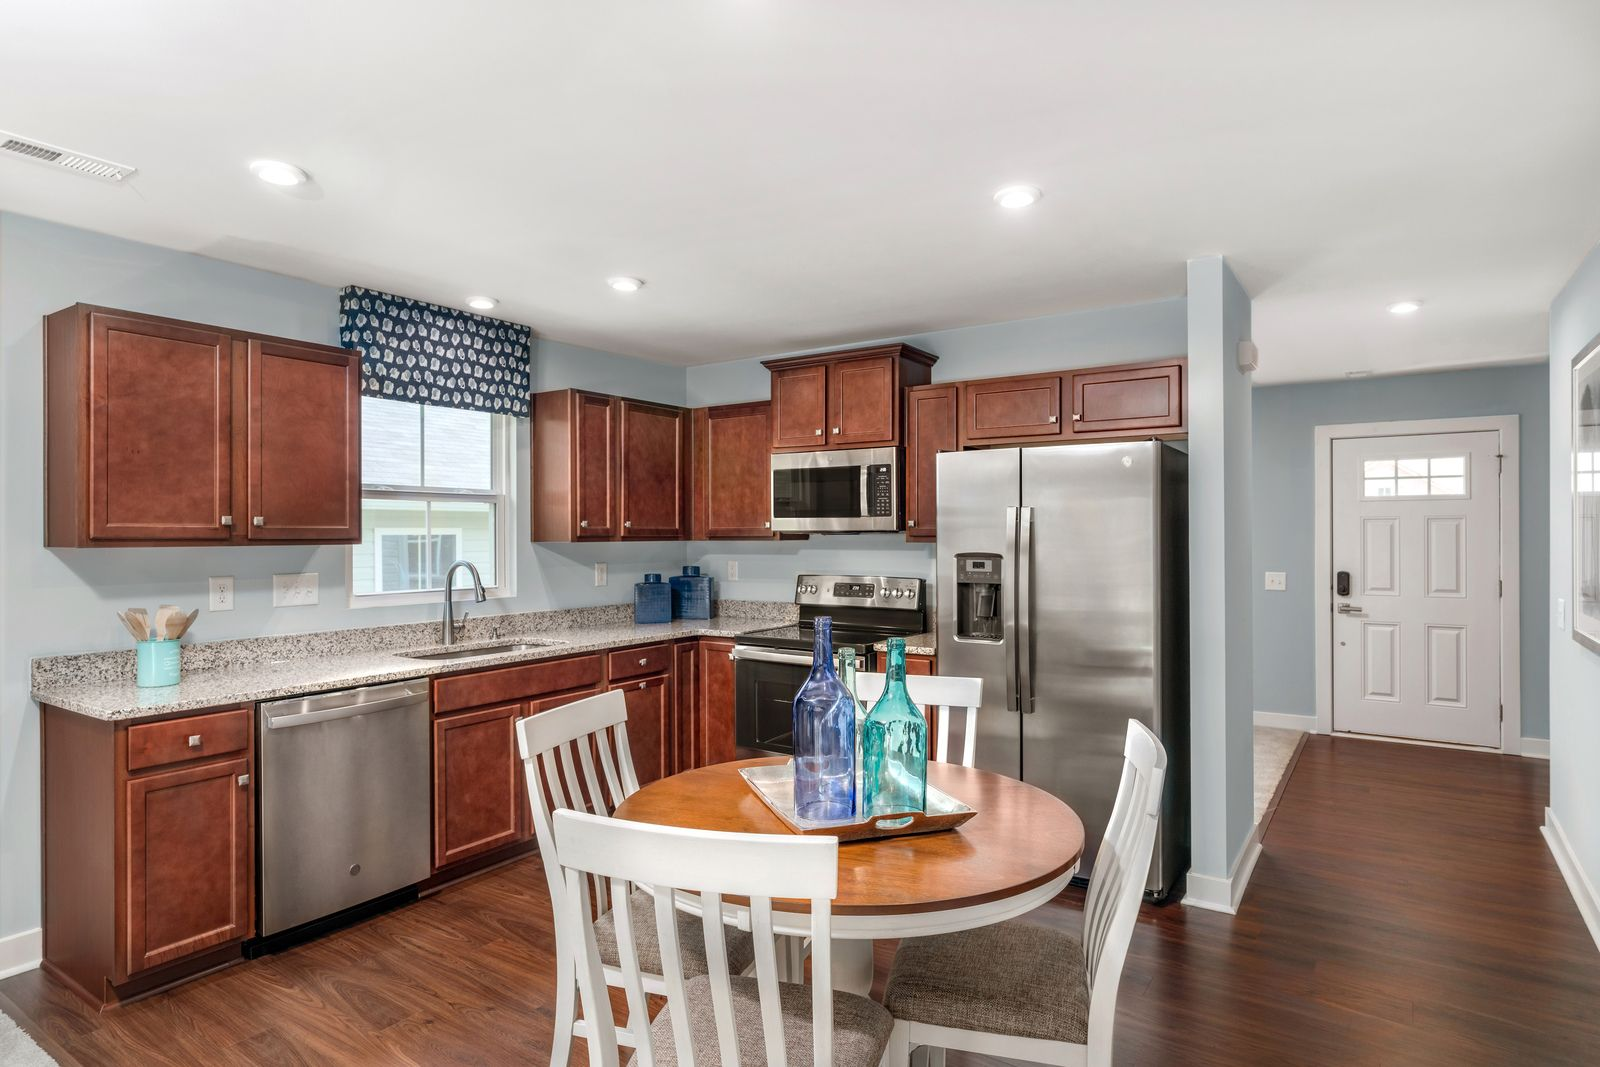 Kitchen featured in the Aruba Bay By Ryan Homes in Sussex County, NJ